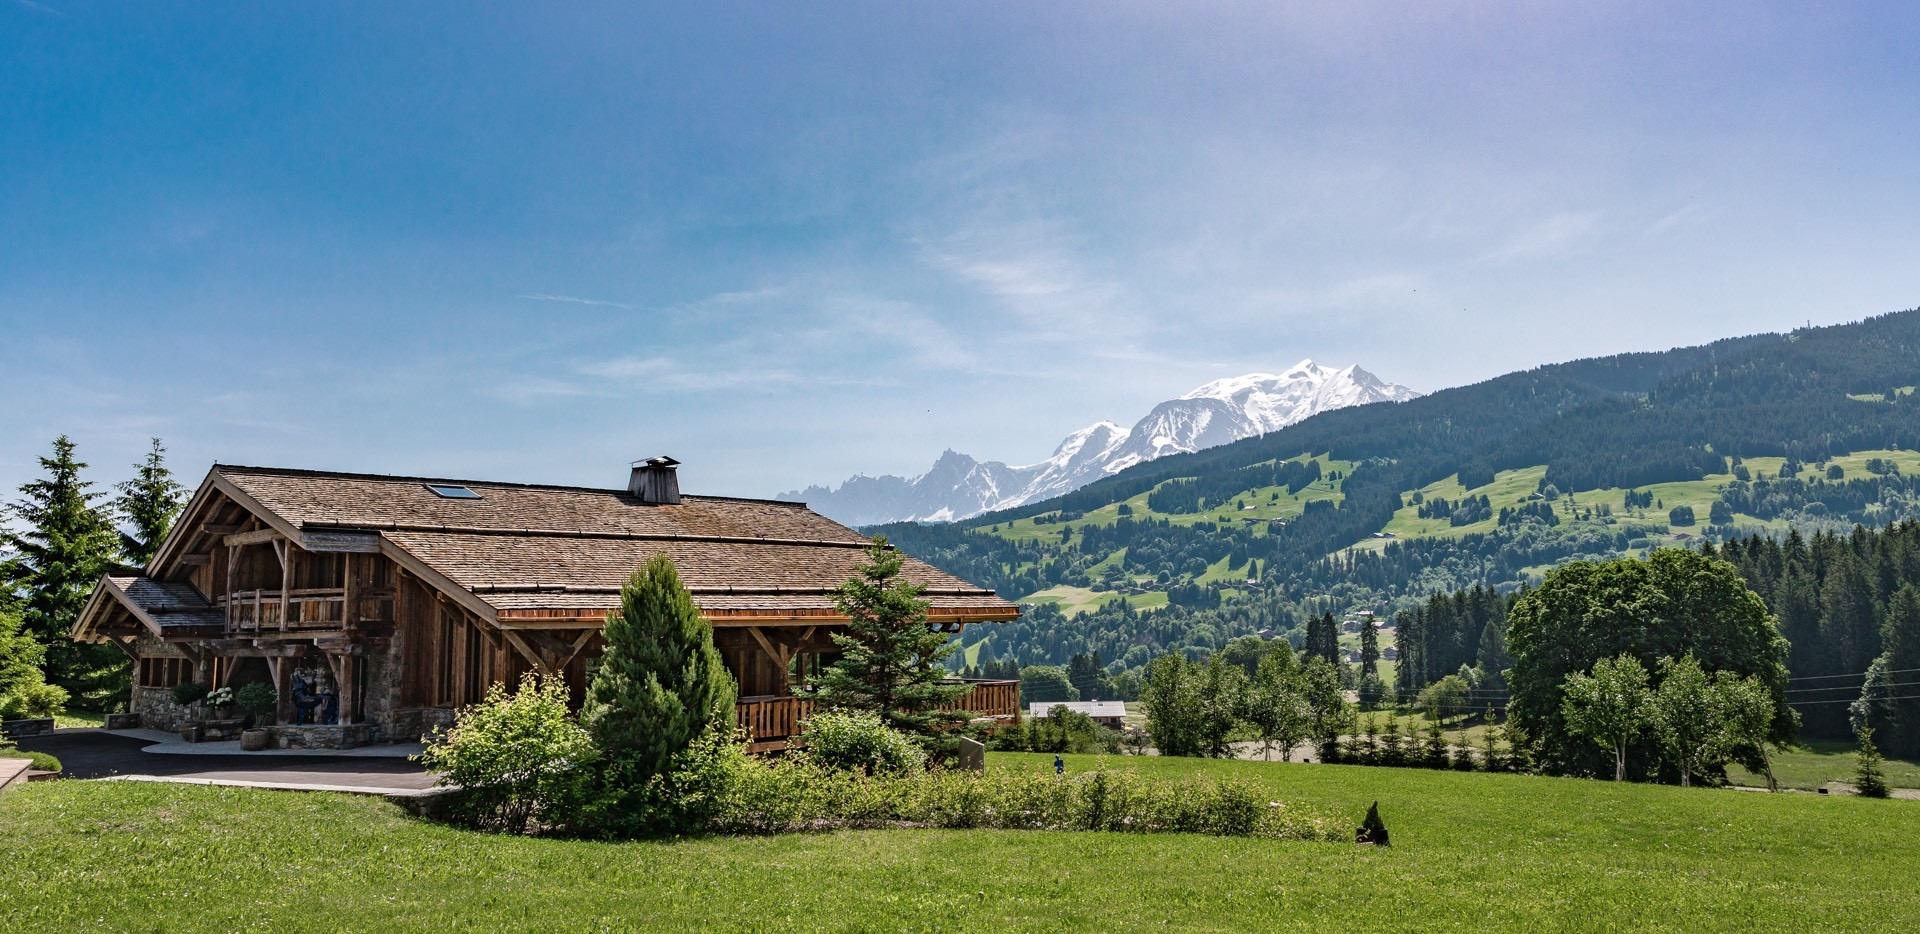 Kings-Avenue-Ultra-Luxurious-Chalets-Ultima-Megève-Mont-Blanc-View